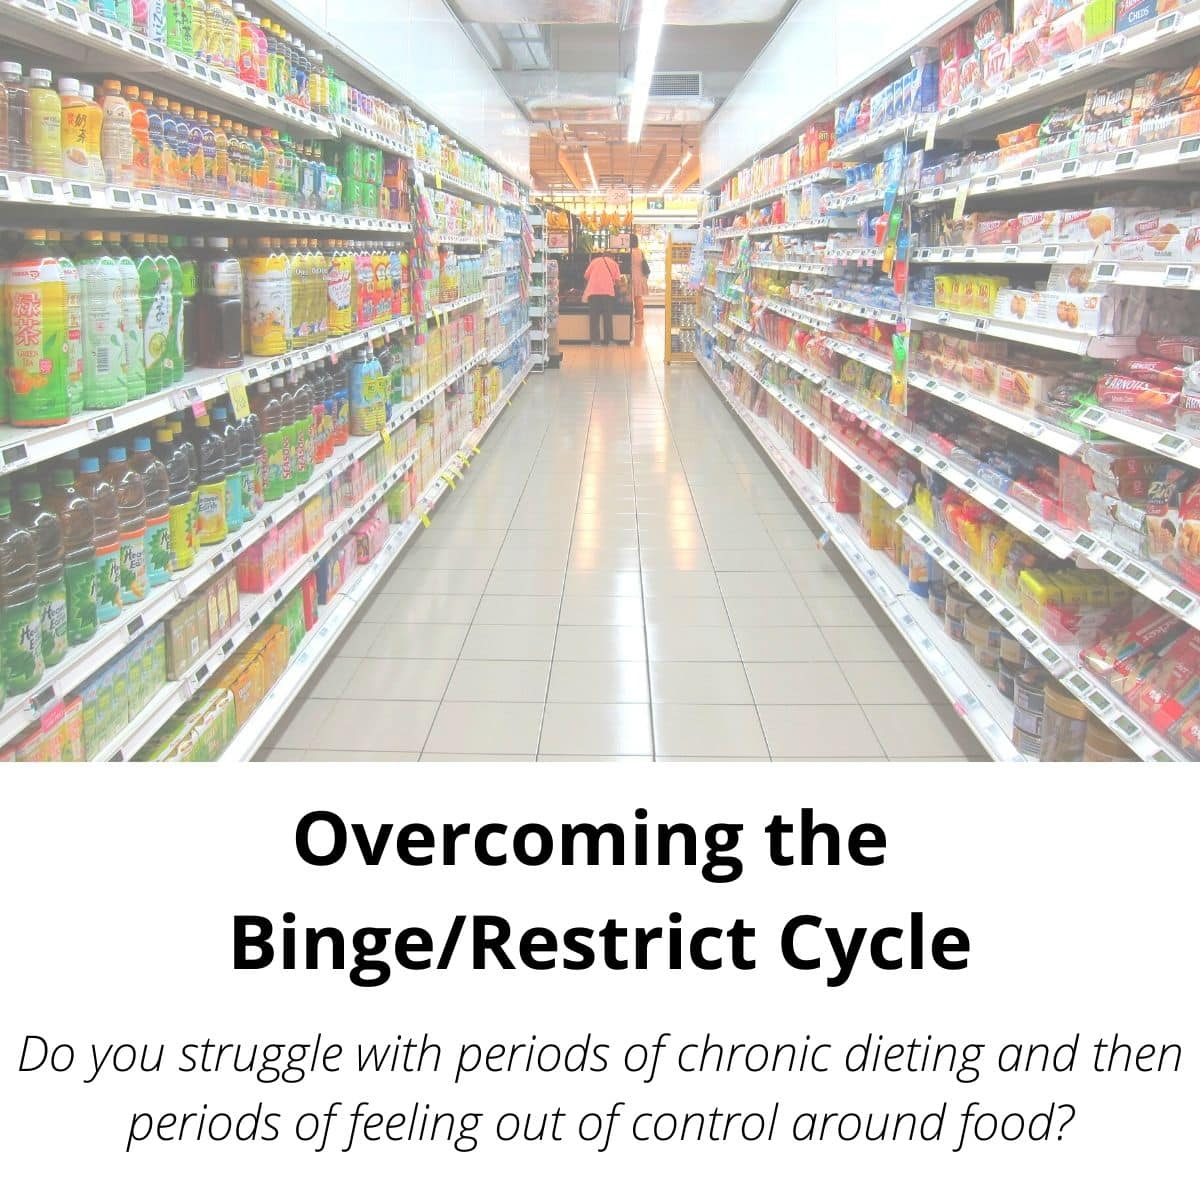 Overcoming the Binge Restrict Cycle